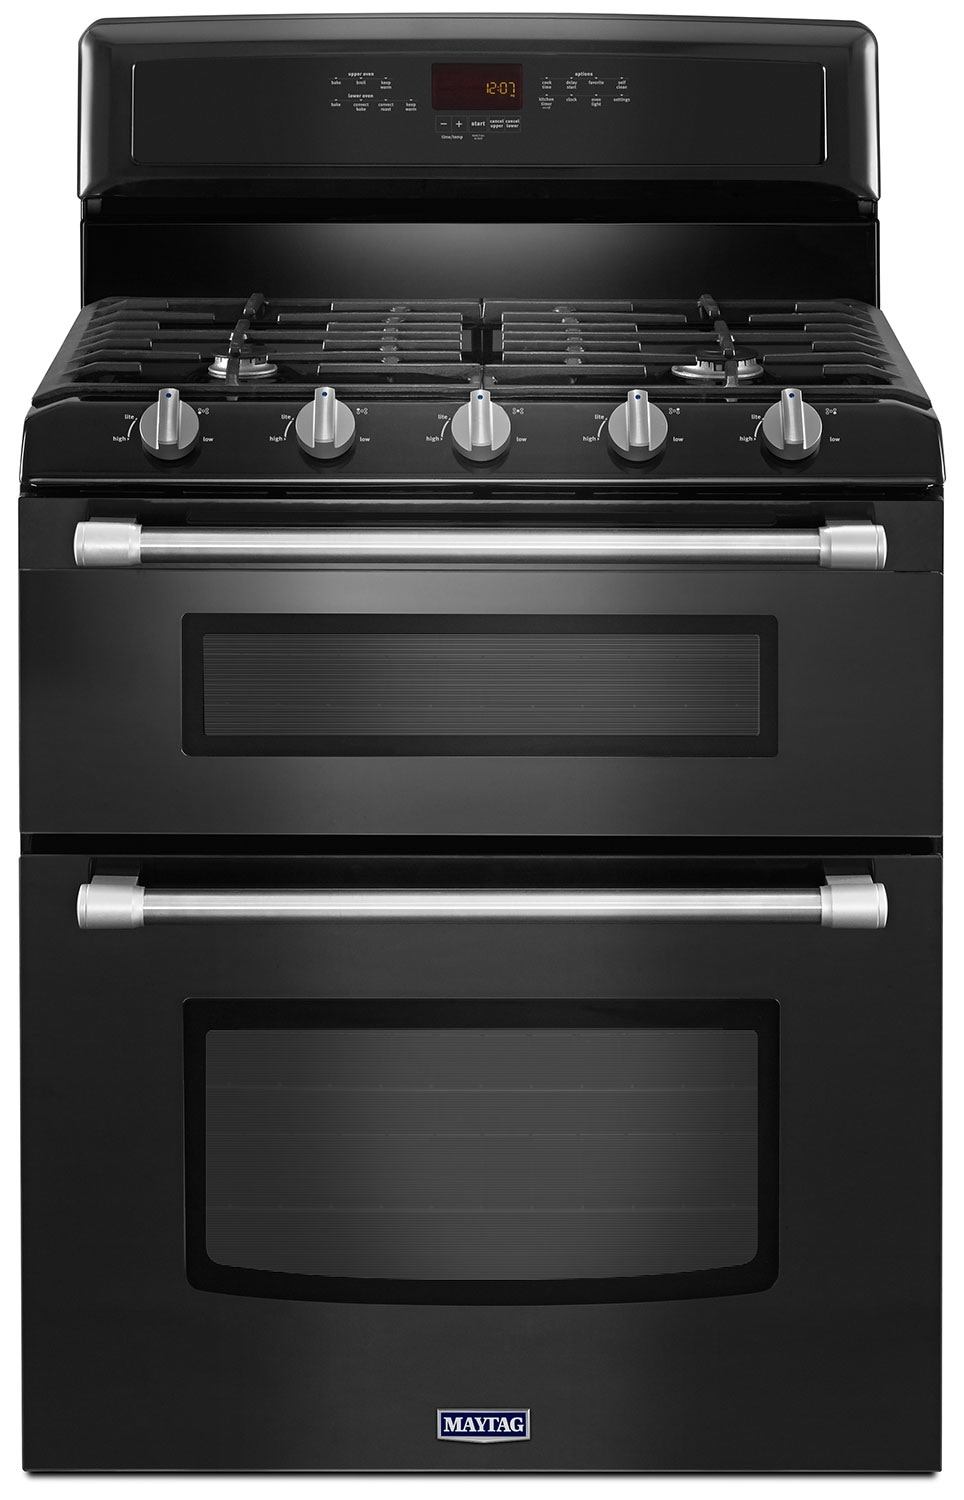 Maytag Black Freestanding Double Gas Range (6.0 Cu. Ft.) - MGT8720DE